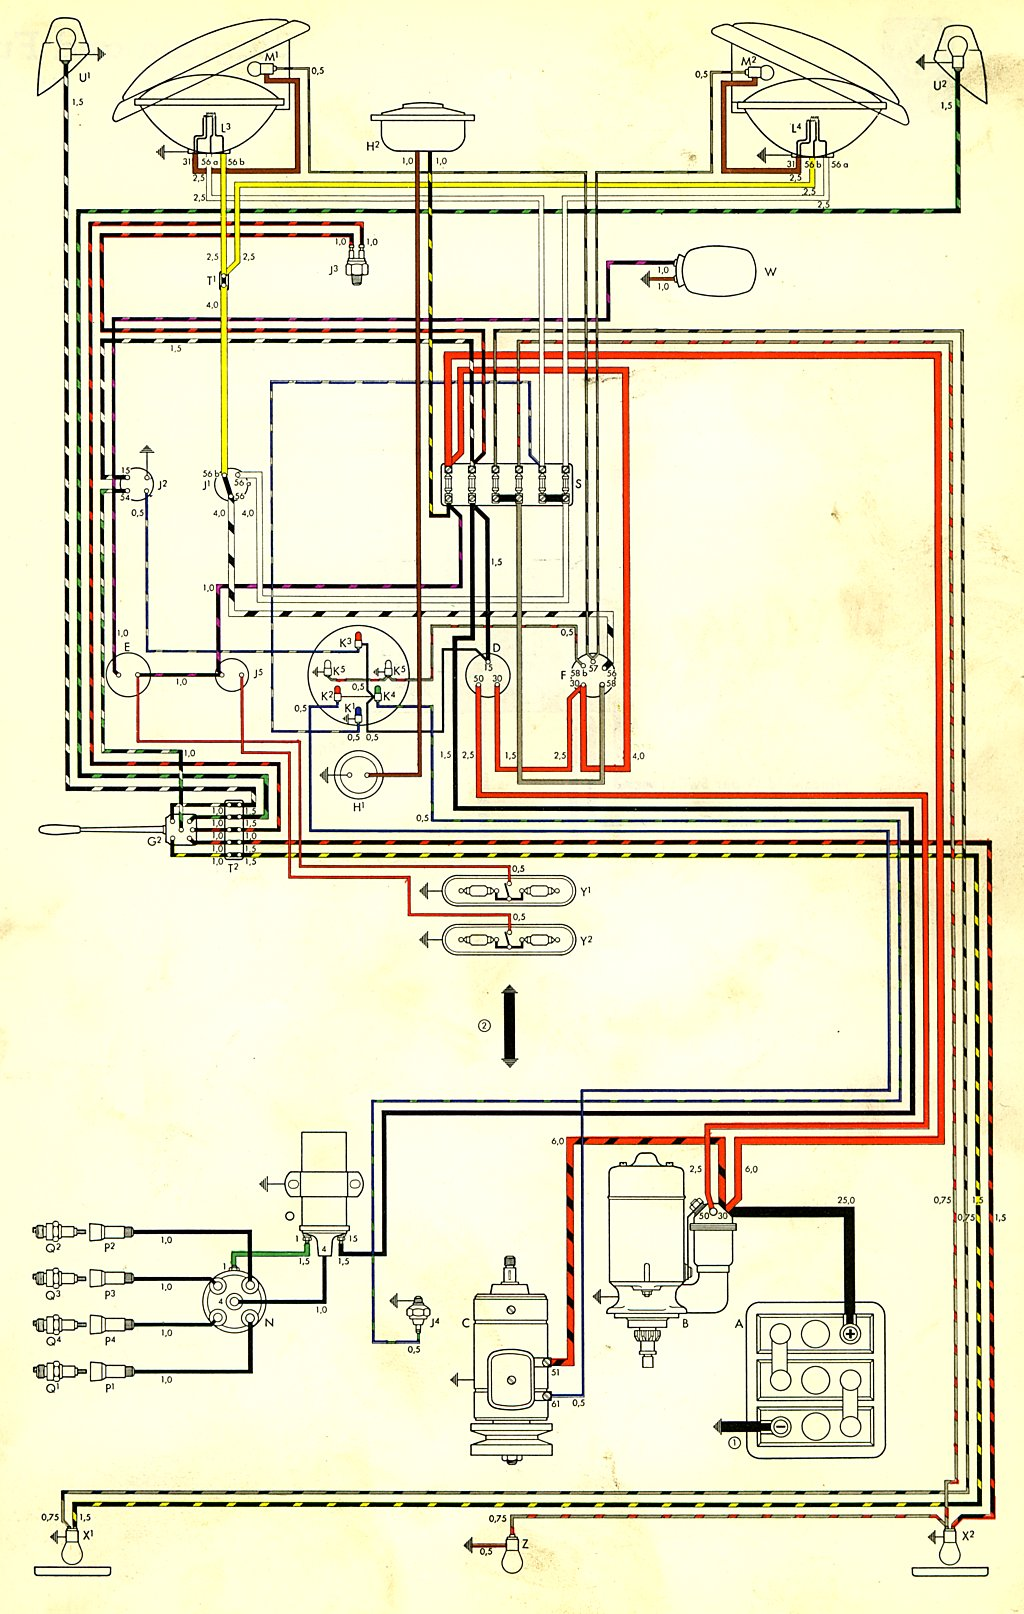 hight resolution of 58 vw alternator wiring everything wiring diagram 58 vw alternator wiring